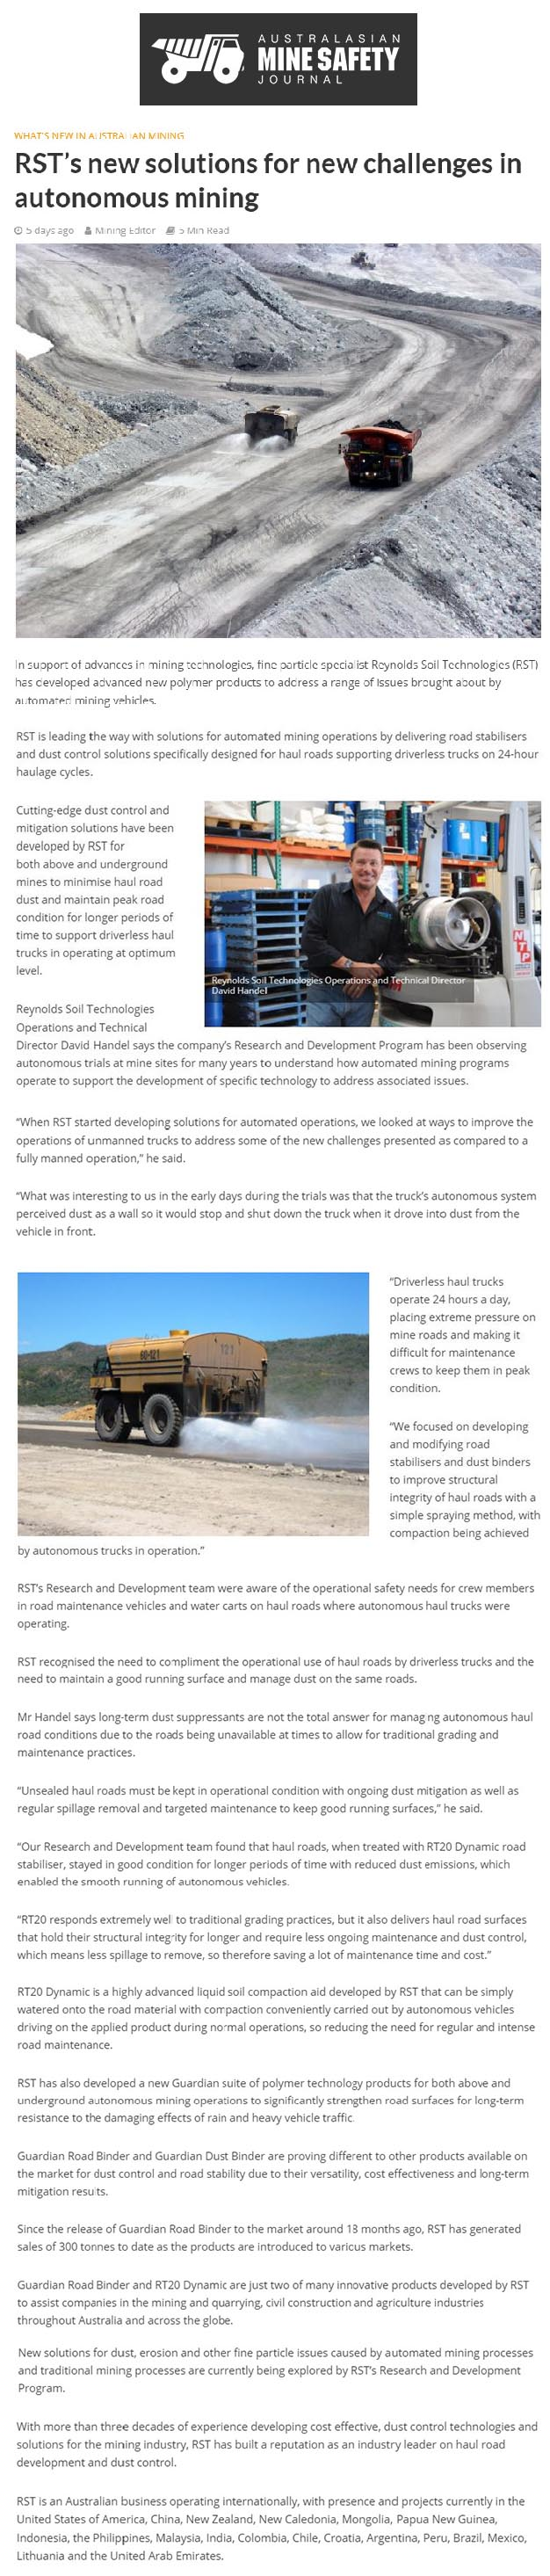 RST's New Solutions for New Challenges in Autonomous Mining